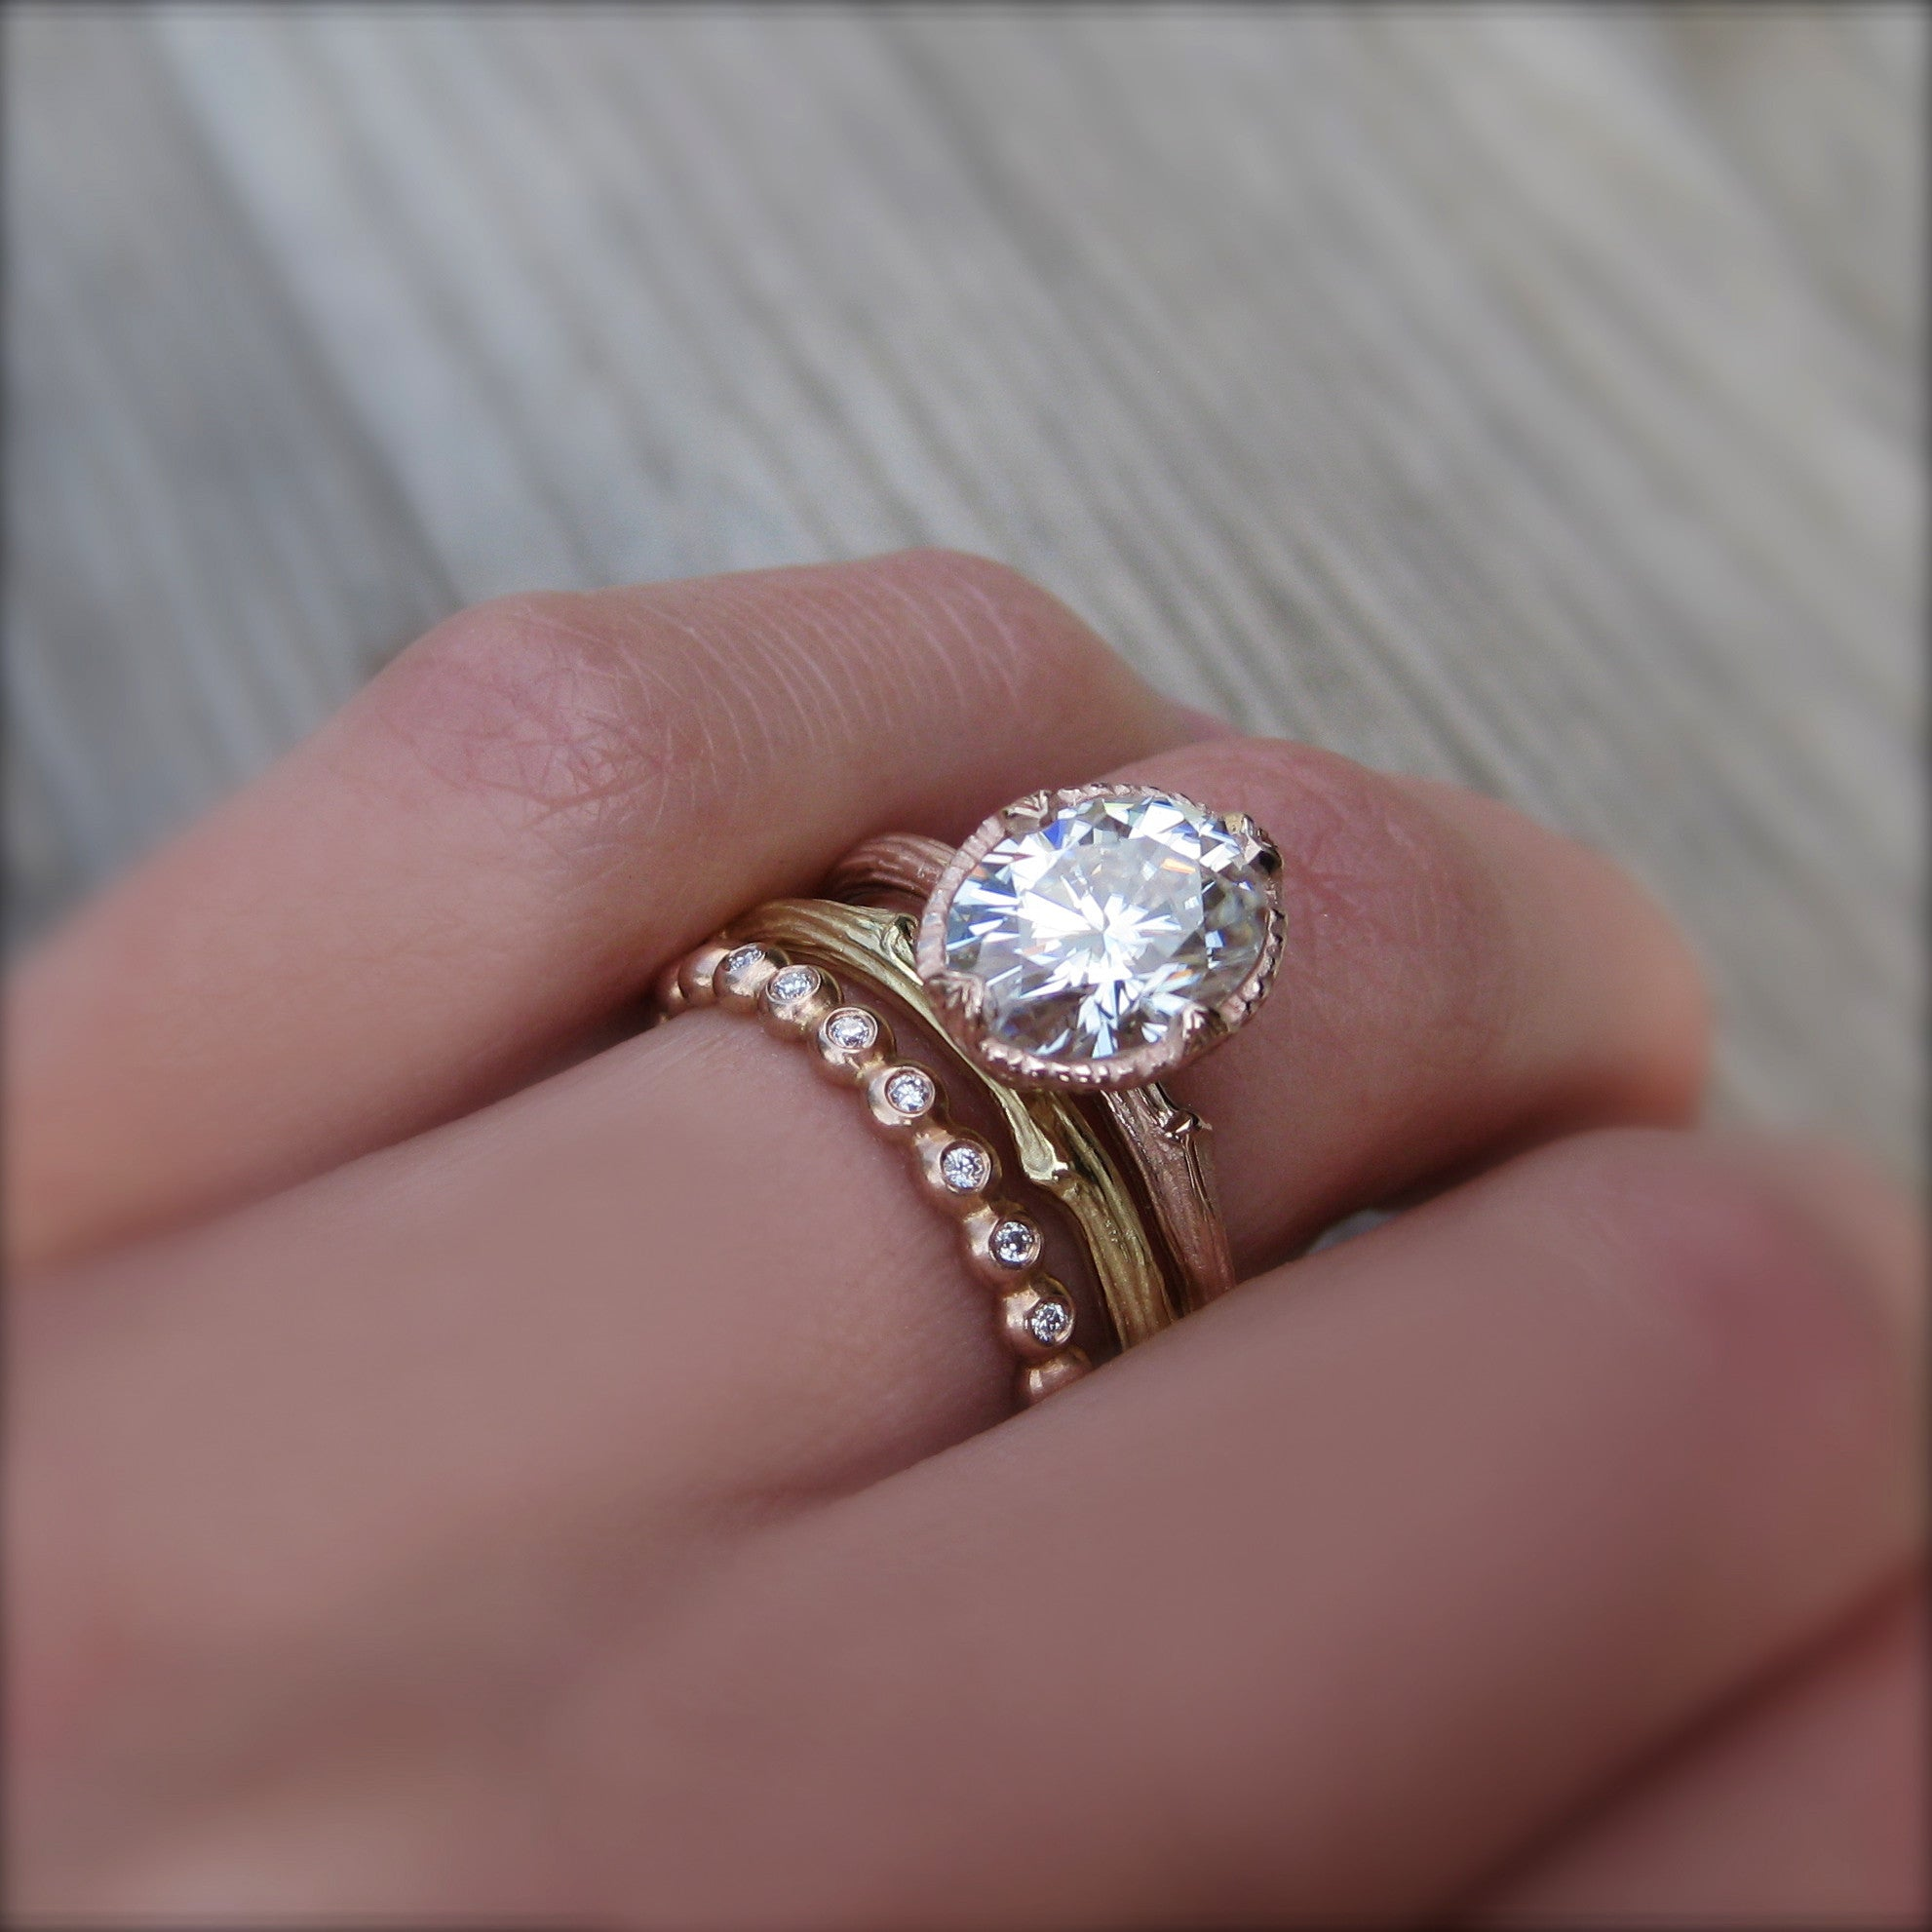 bud cut halo floret gold diamond prong with nl fascinating rings shaped ring wg floral white oval in jewelry engagement